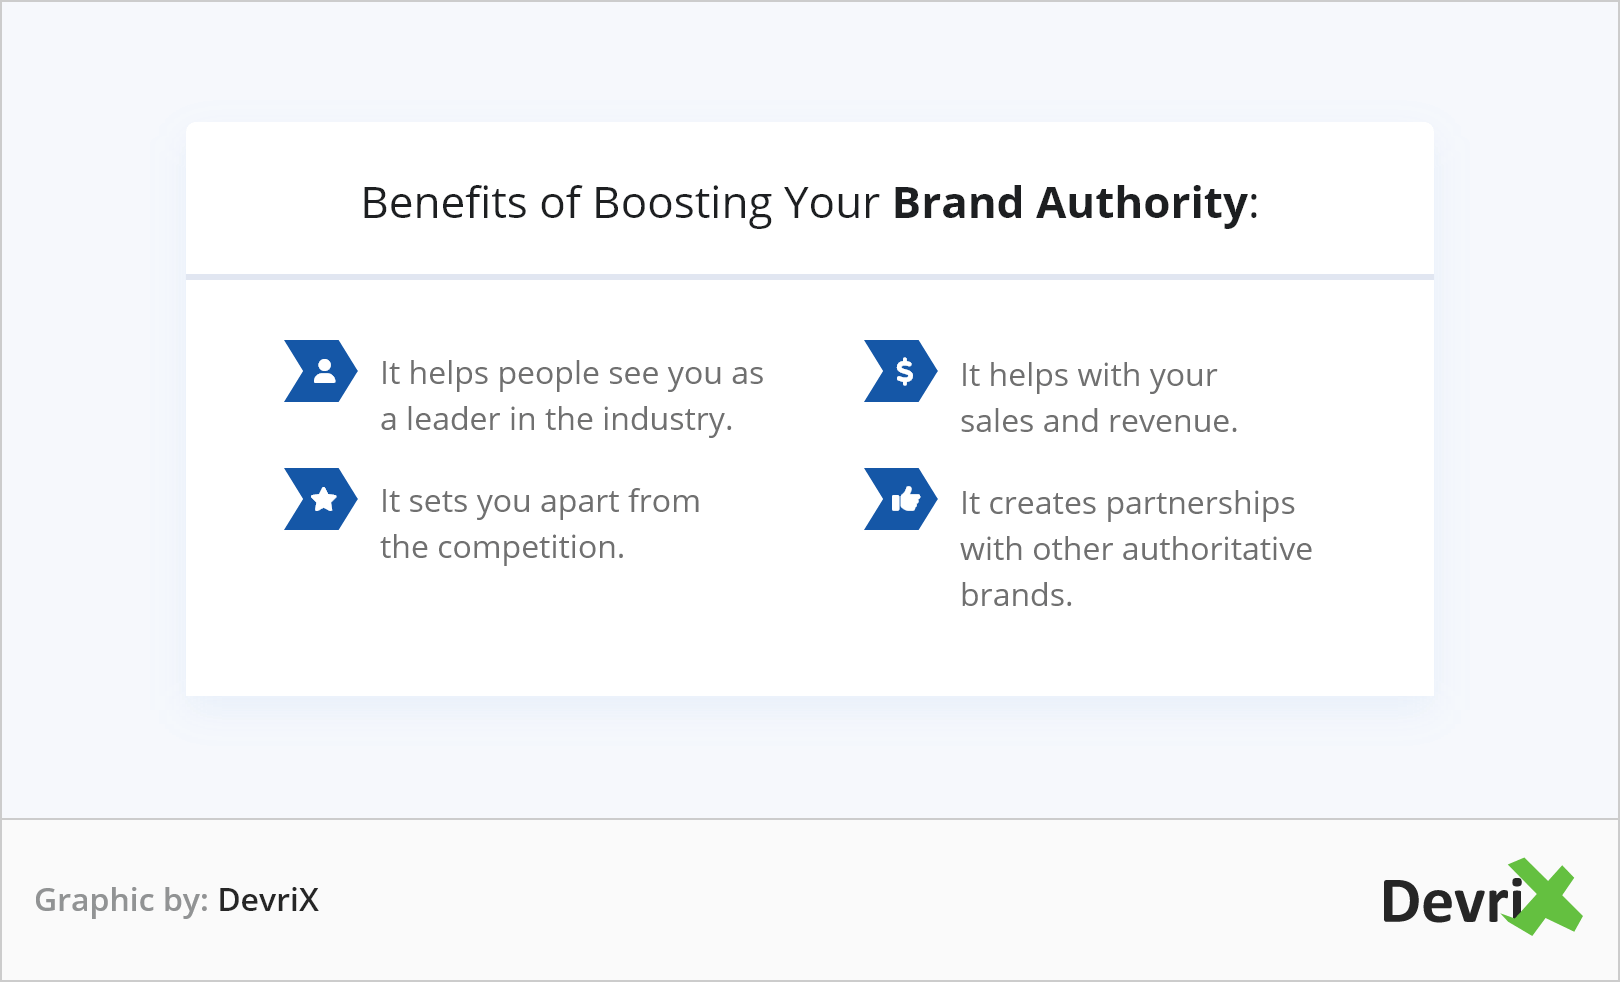 Benefits of Boosting Your Brand Authority